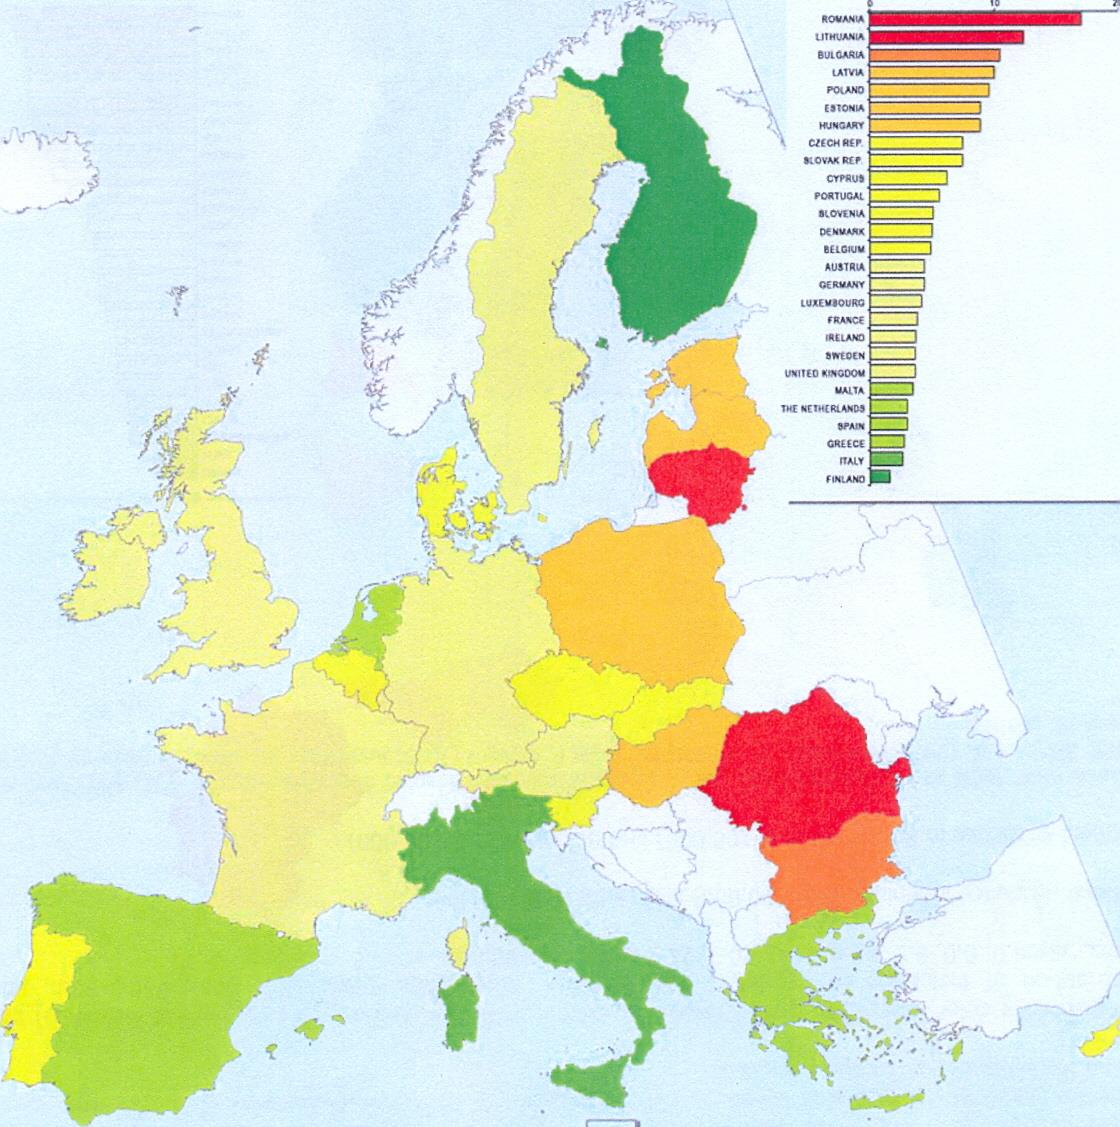 Cervical cancer mortality in the EU Member States